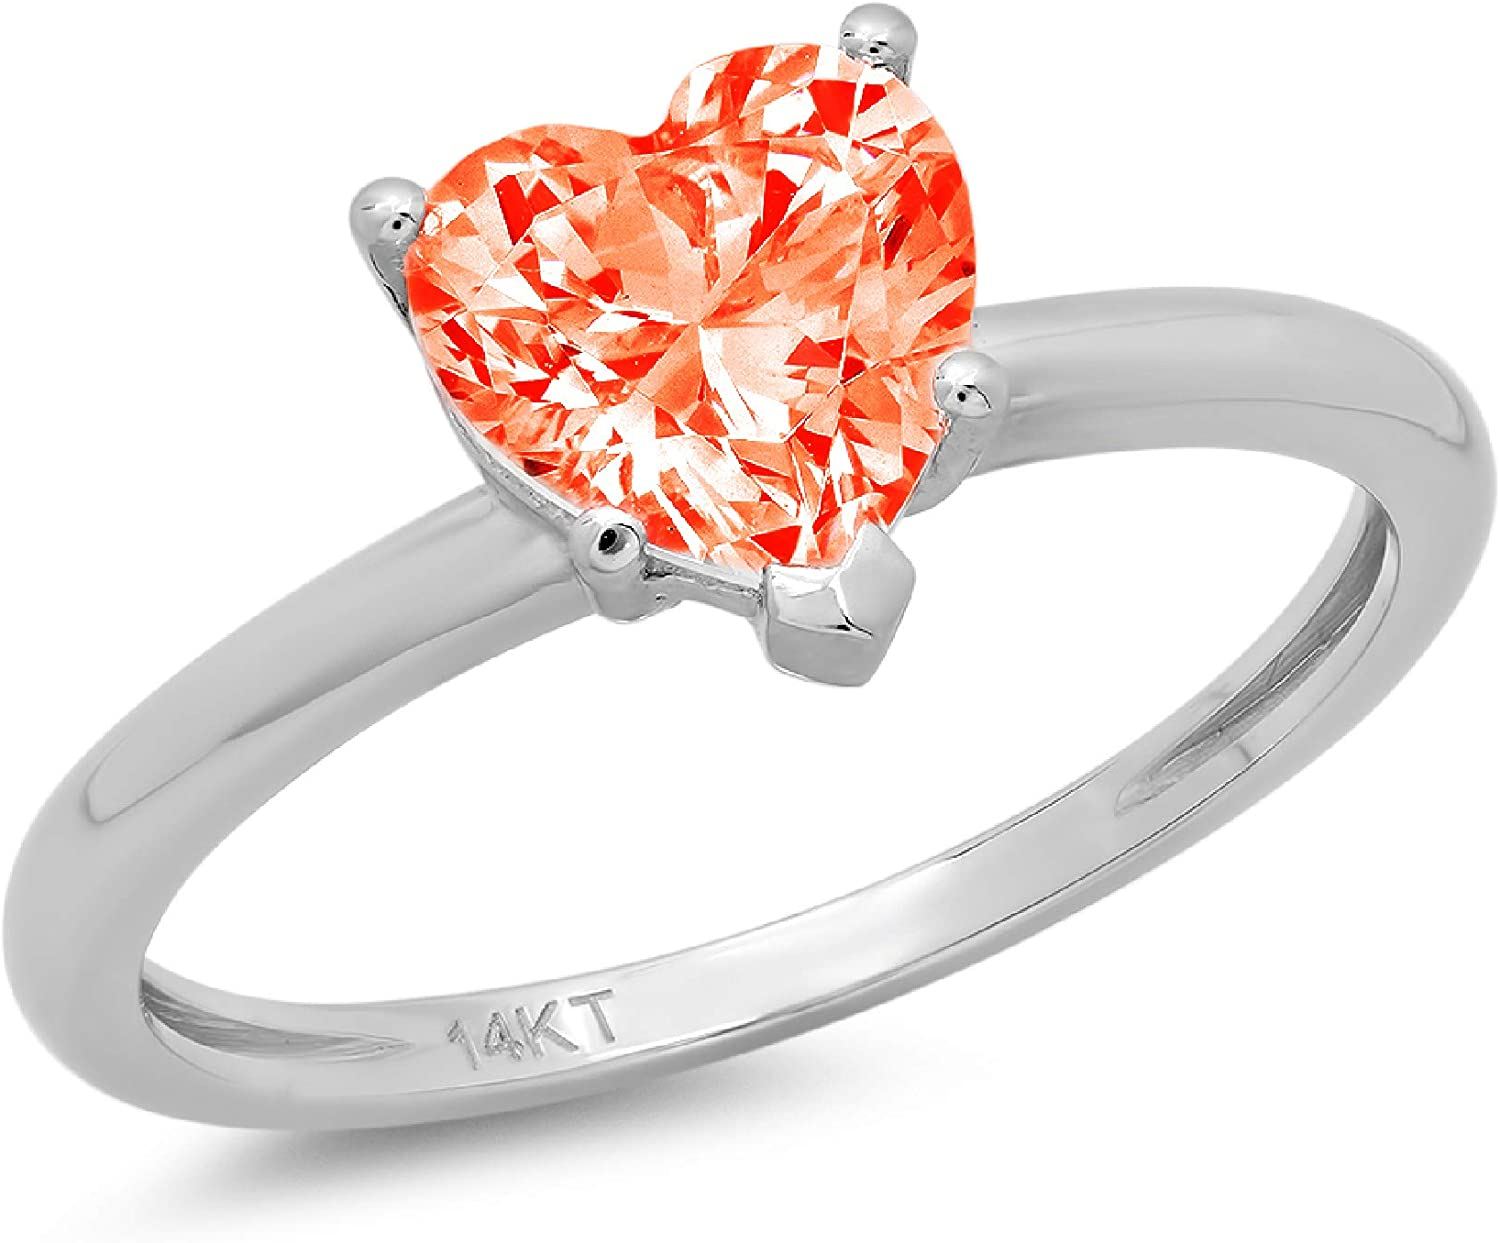 1.9ct Brilliant Heart Cut Solitaire Stunning Genuine Red Simulated Diamond Cubic Zirconia Ideal VVS1 D 5-Prong Engagement Wedding Bridal Promise Anniversary Ring Solid 14k White Gold for Women